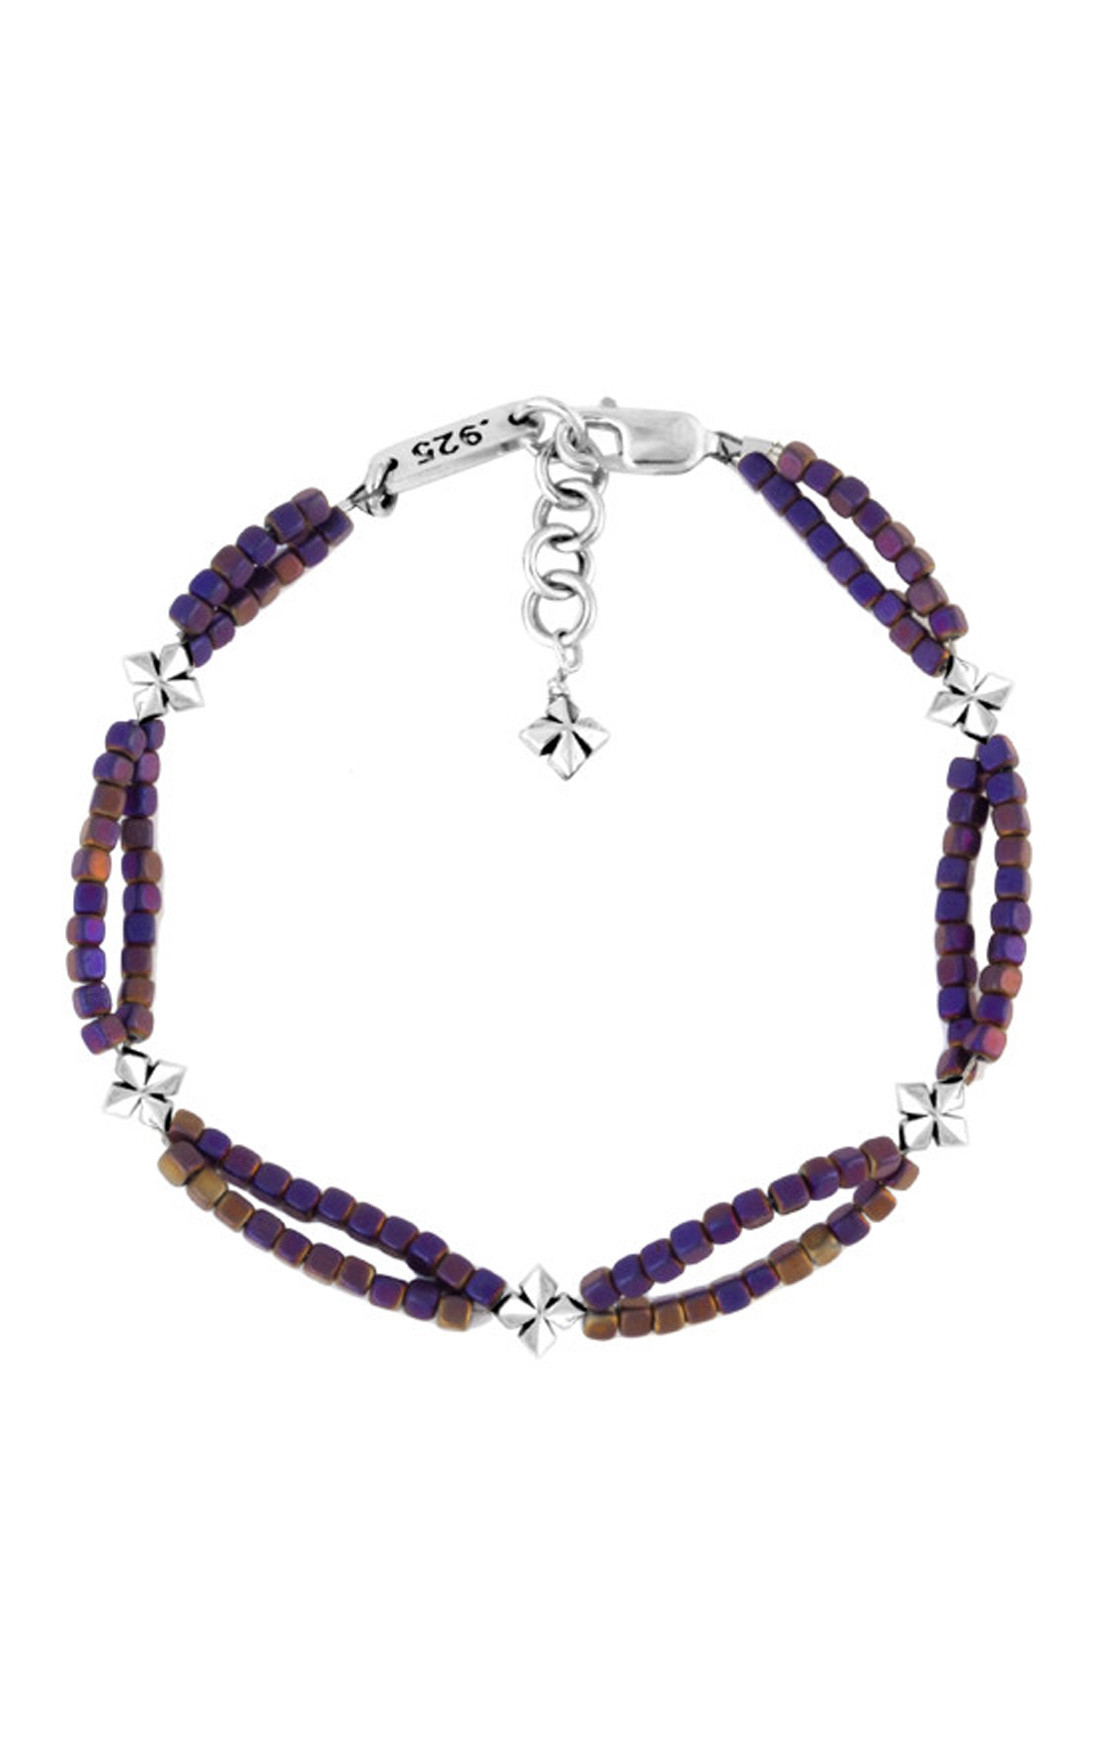 King Baby - Purple Hematite Double Strand Bracelet with MB Crosses (K42-8225C)